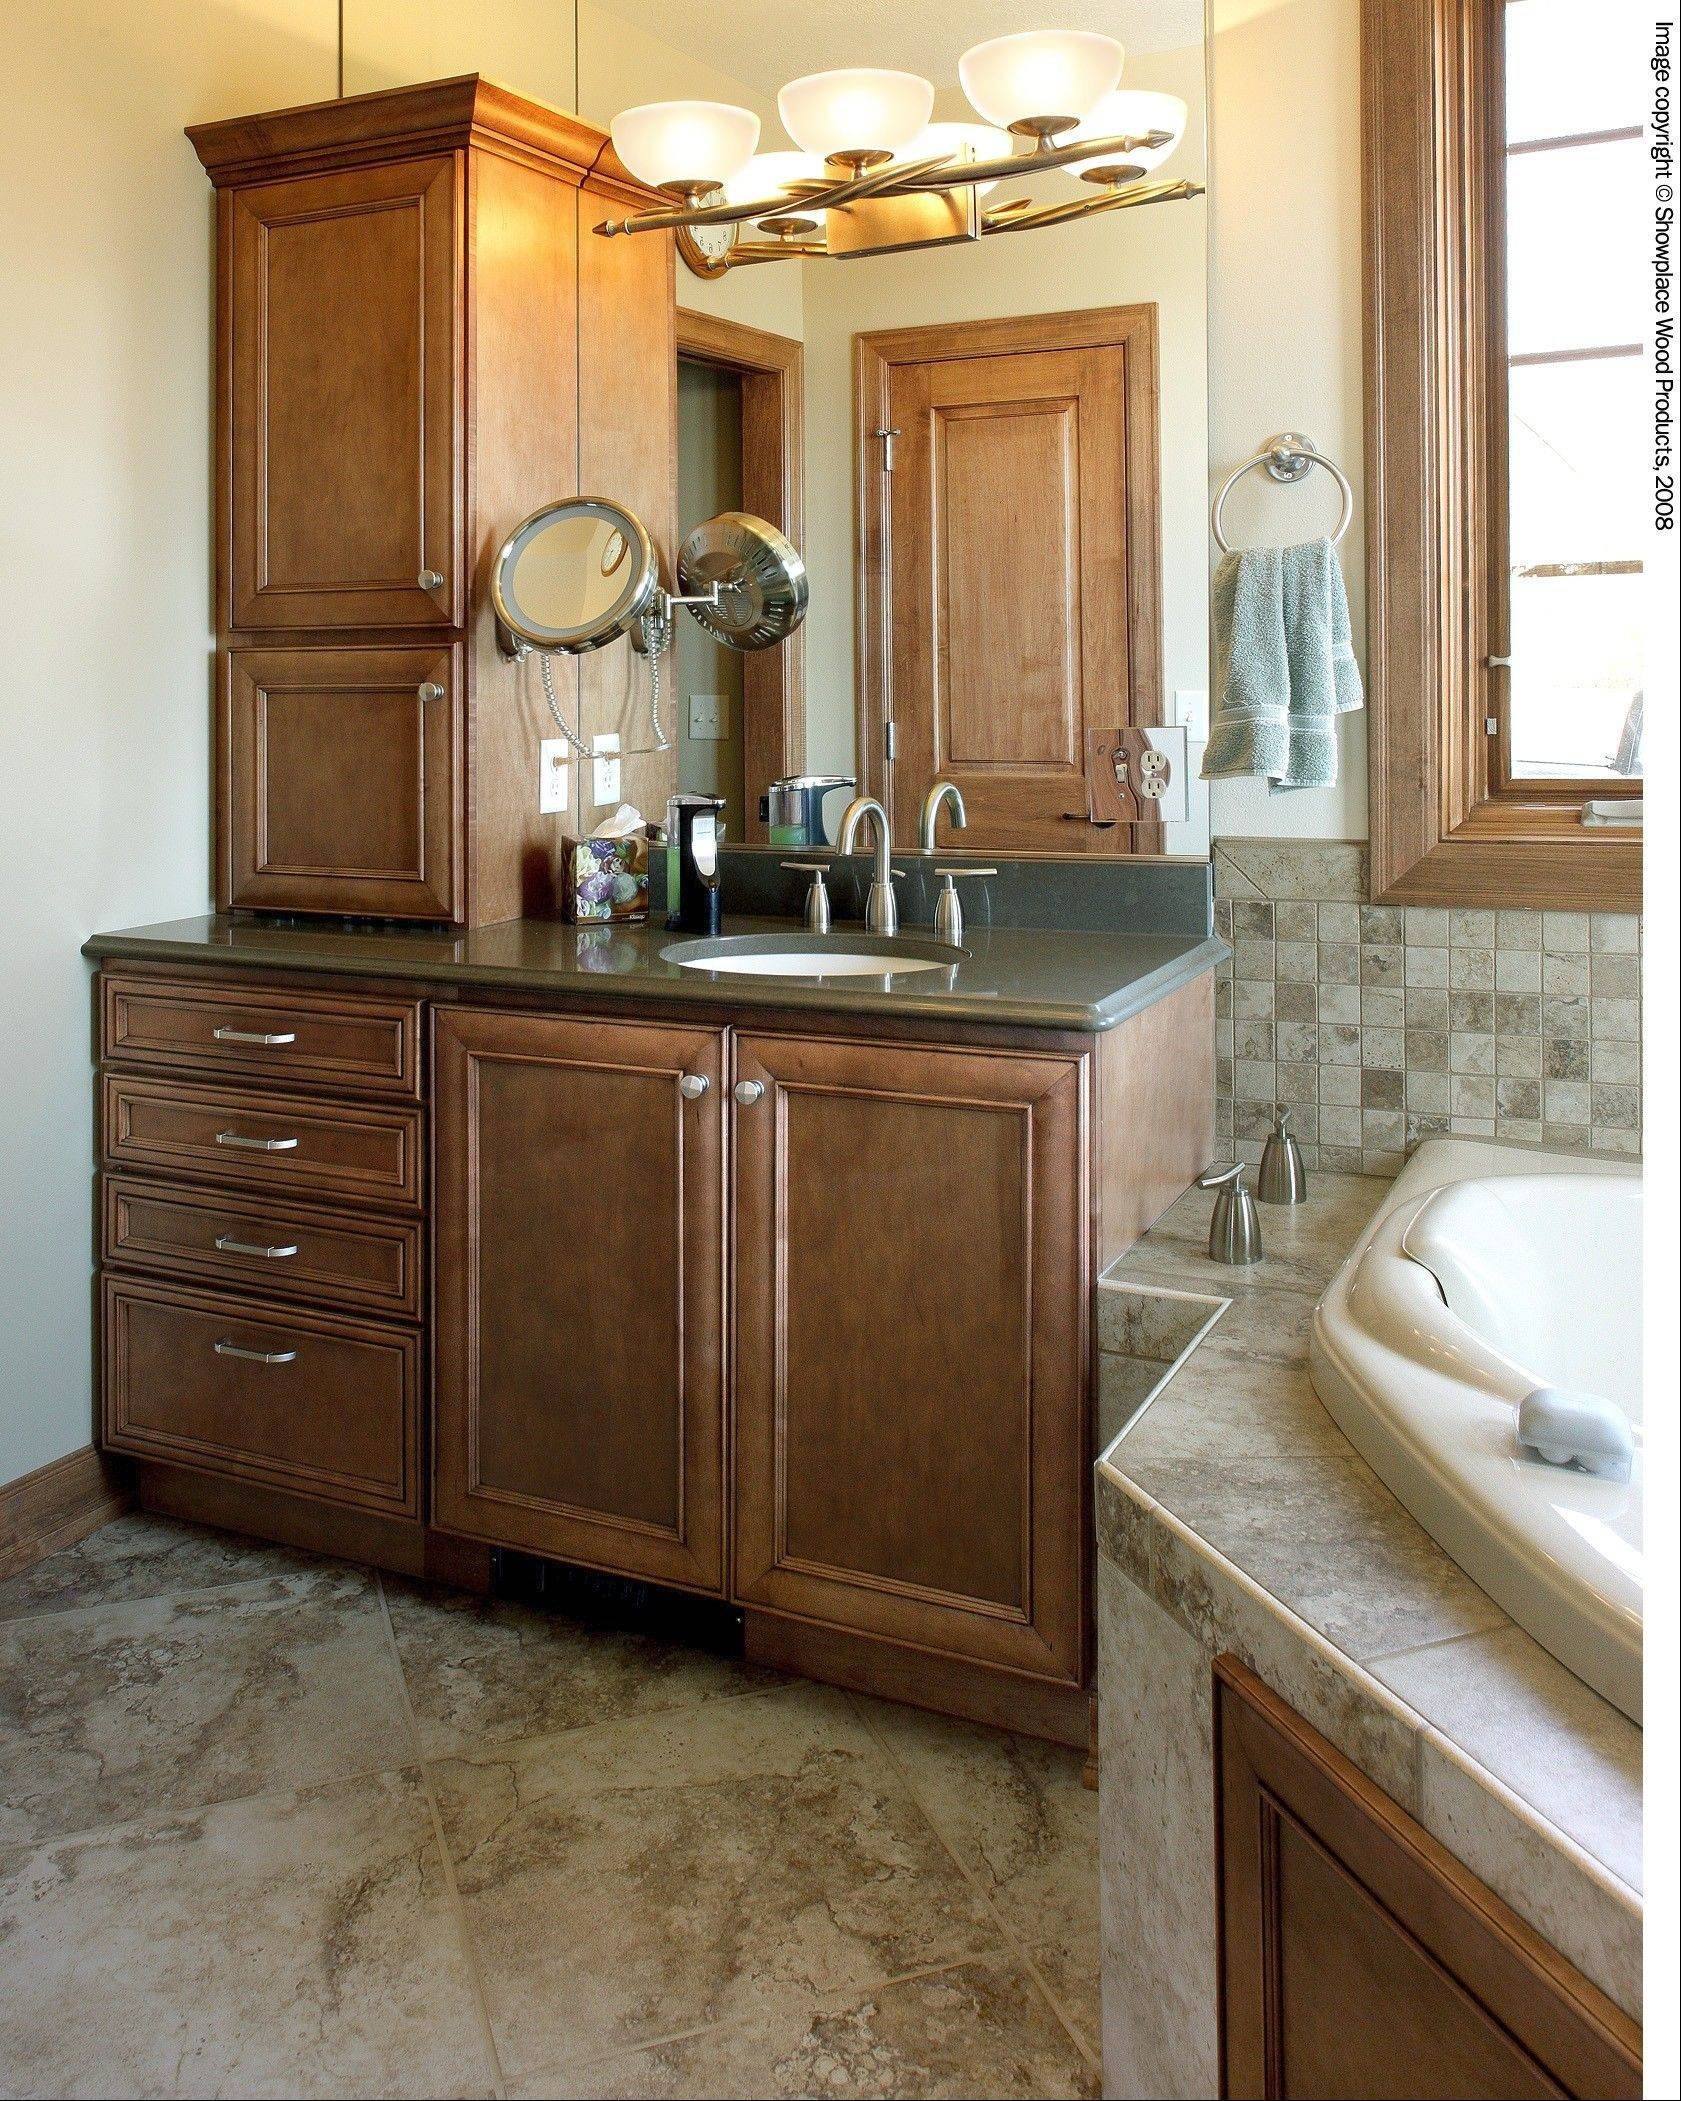 Bathroom vanity heights have changed as more people are aware of aging in place.